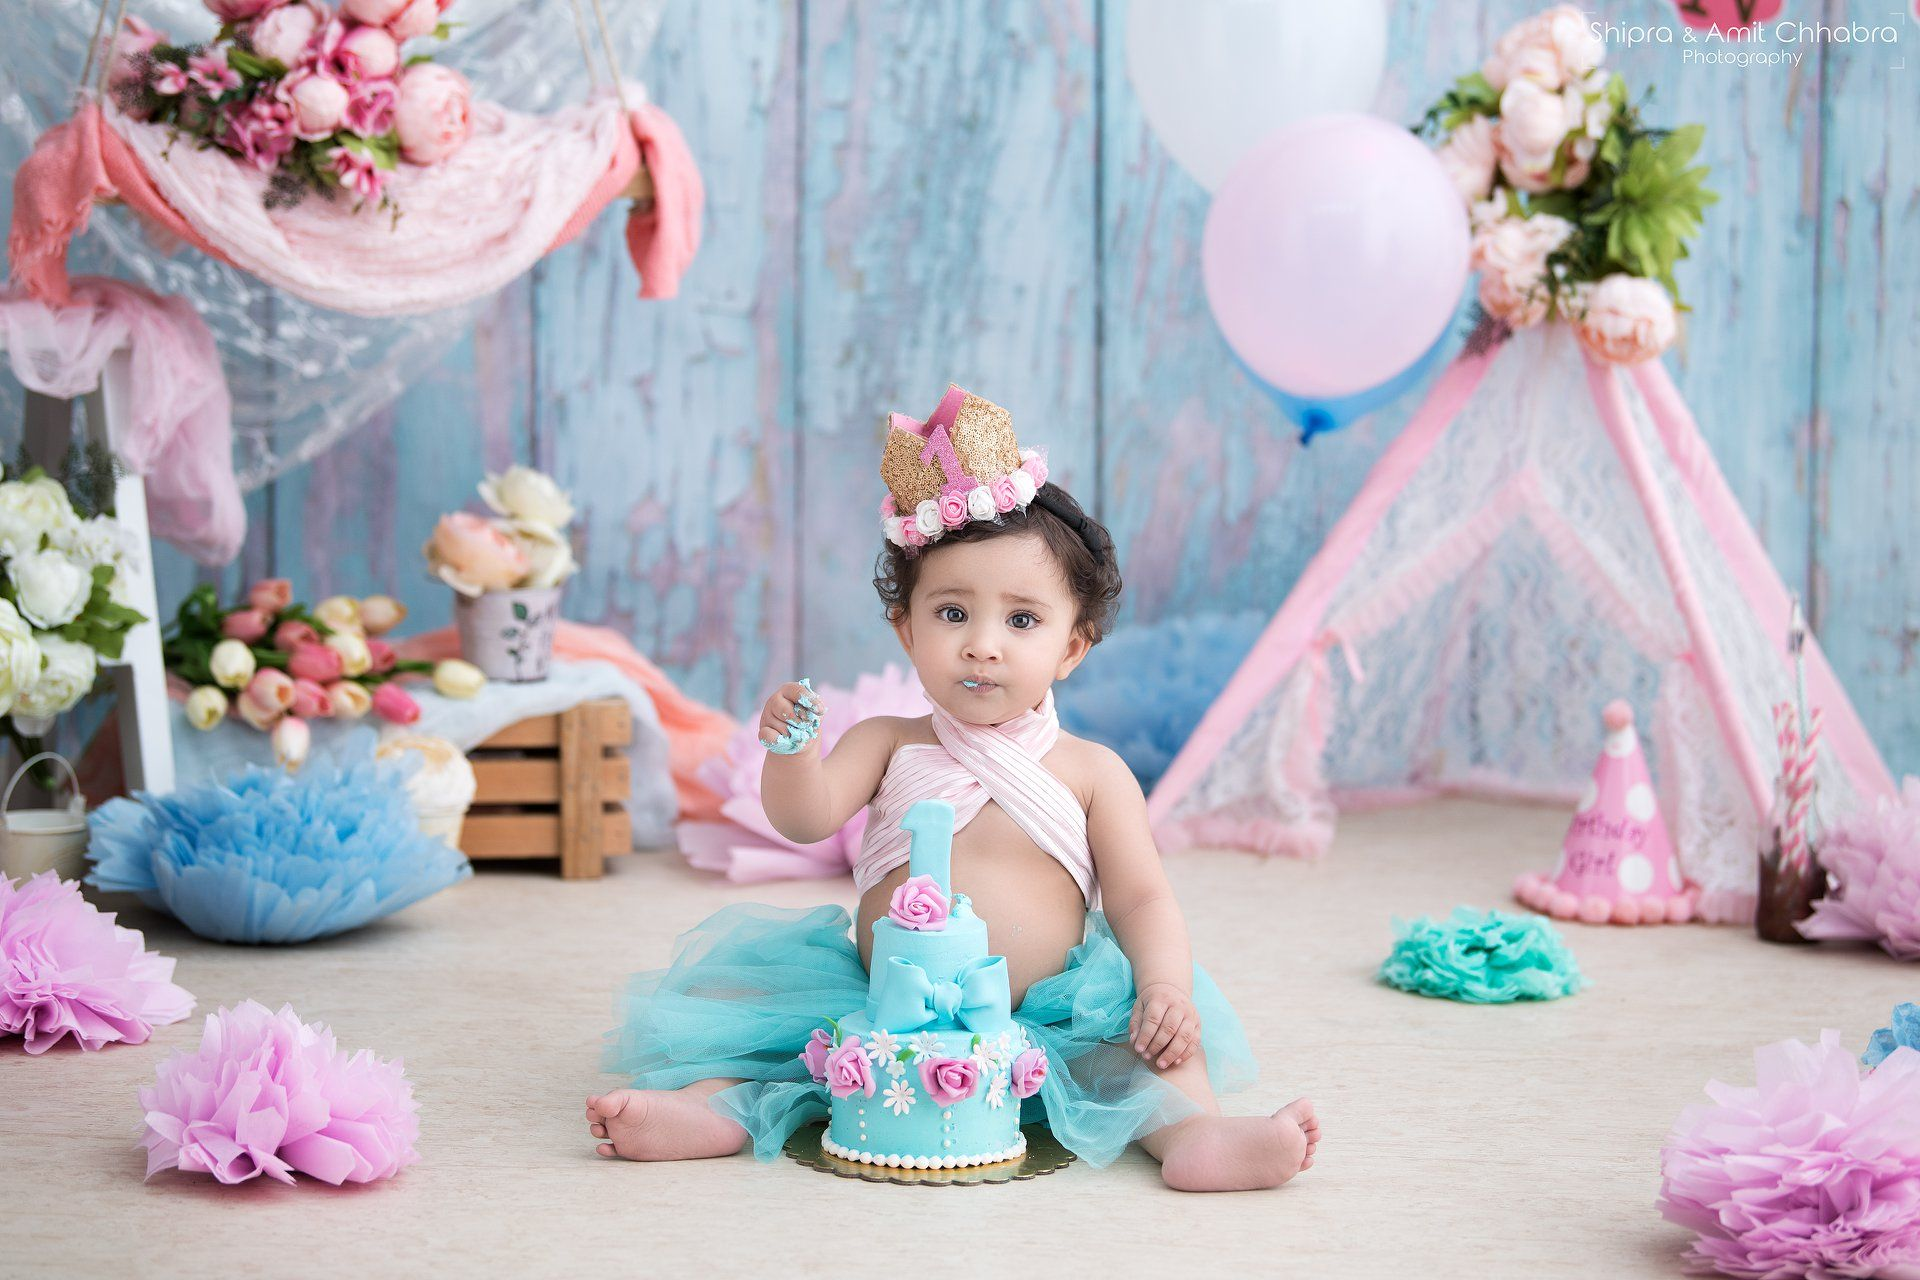 First birthday shoot cake smash photo shoot green floral cake 2 tier cakes tutu dress teepee set shipra amit chhabra photography